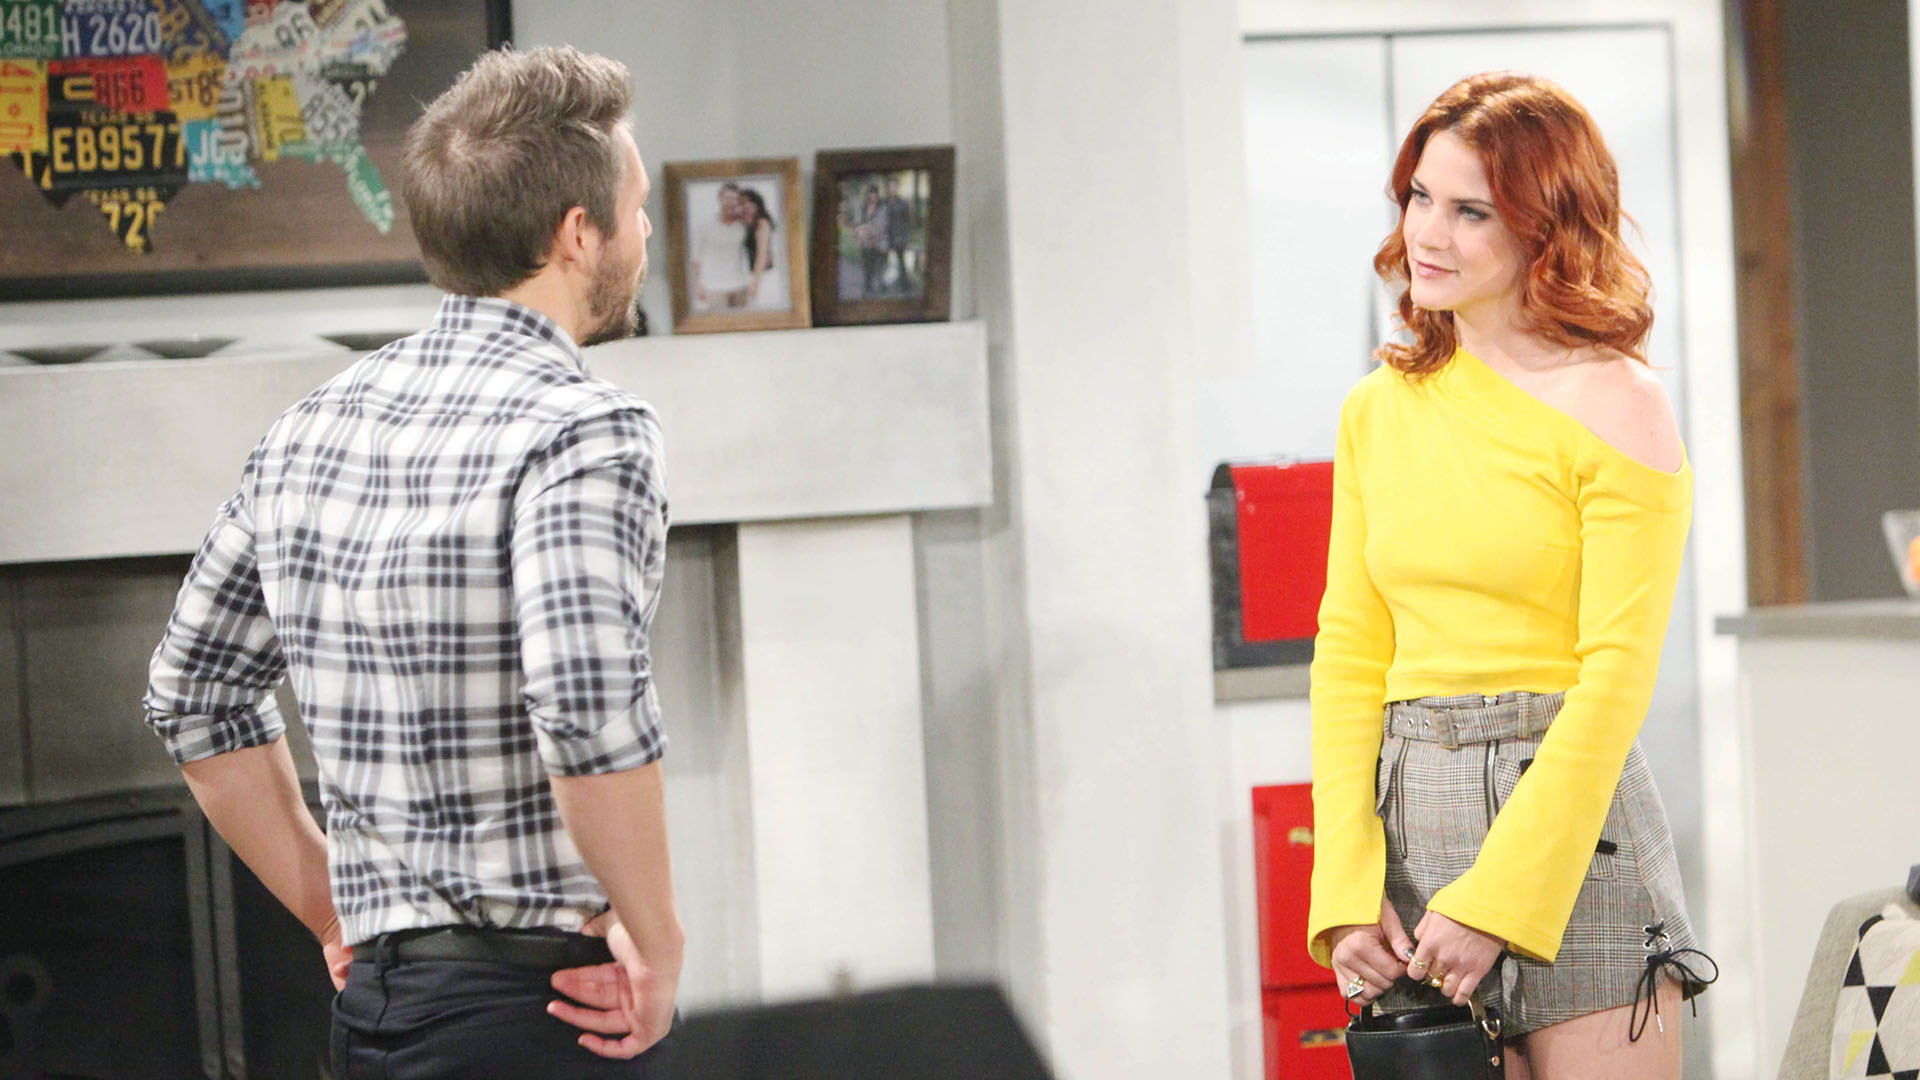 Sally asks Liam a bold question about his marriage.